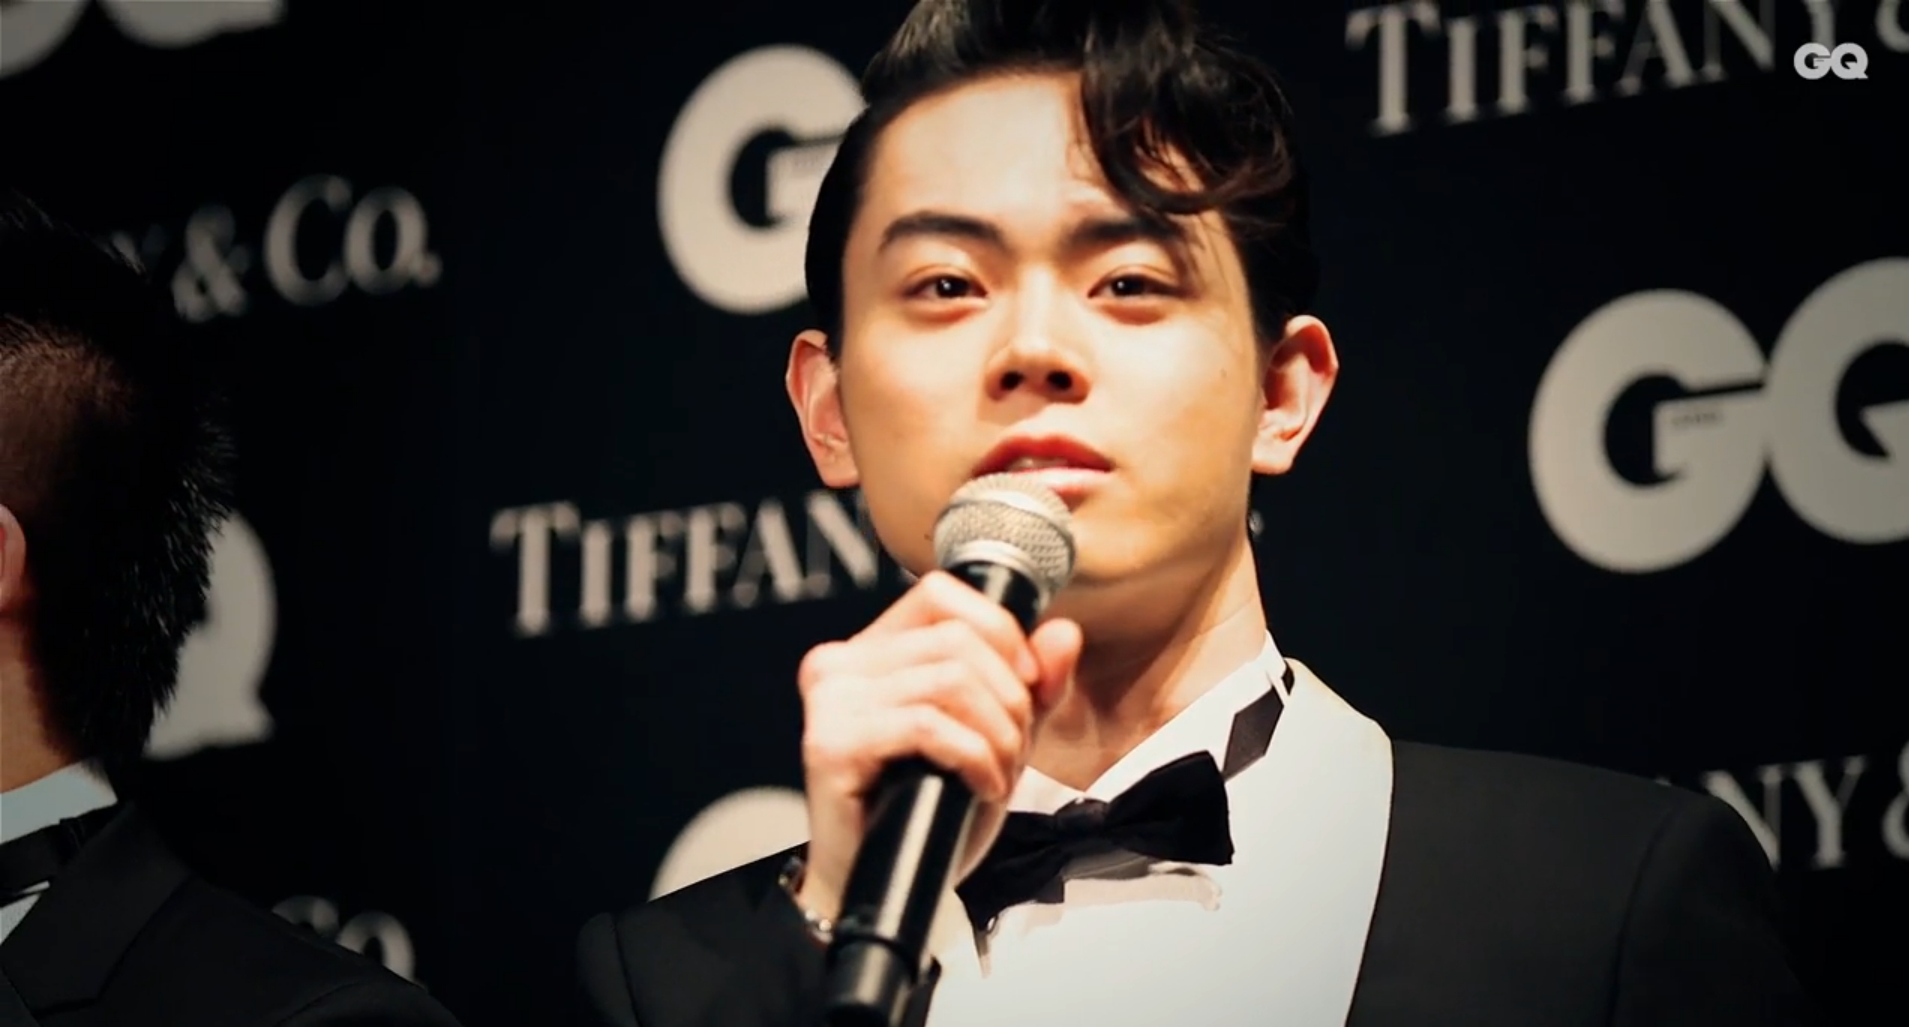 Masaki Suda Wins GQ Men of The Year Award